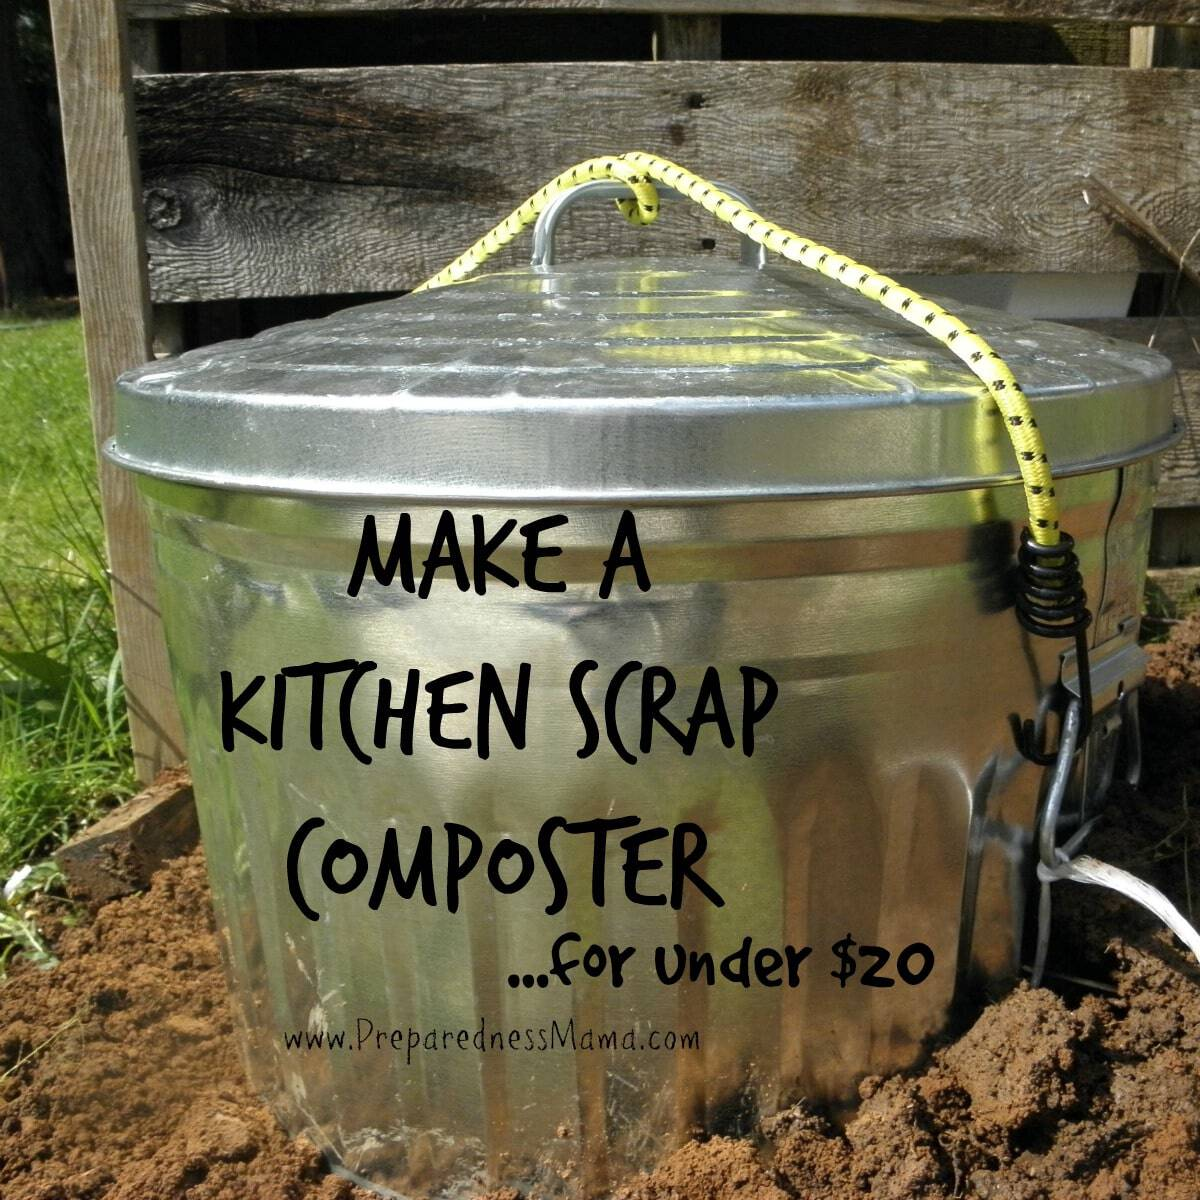 Homemade Fertilizer From Vegetable Scraps: DIY Simple Kitchen Scrap Composter